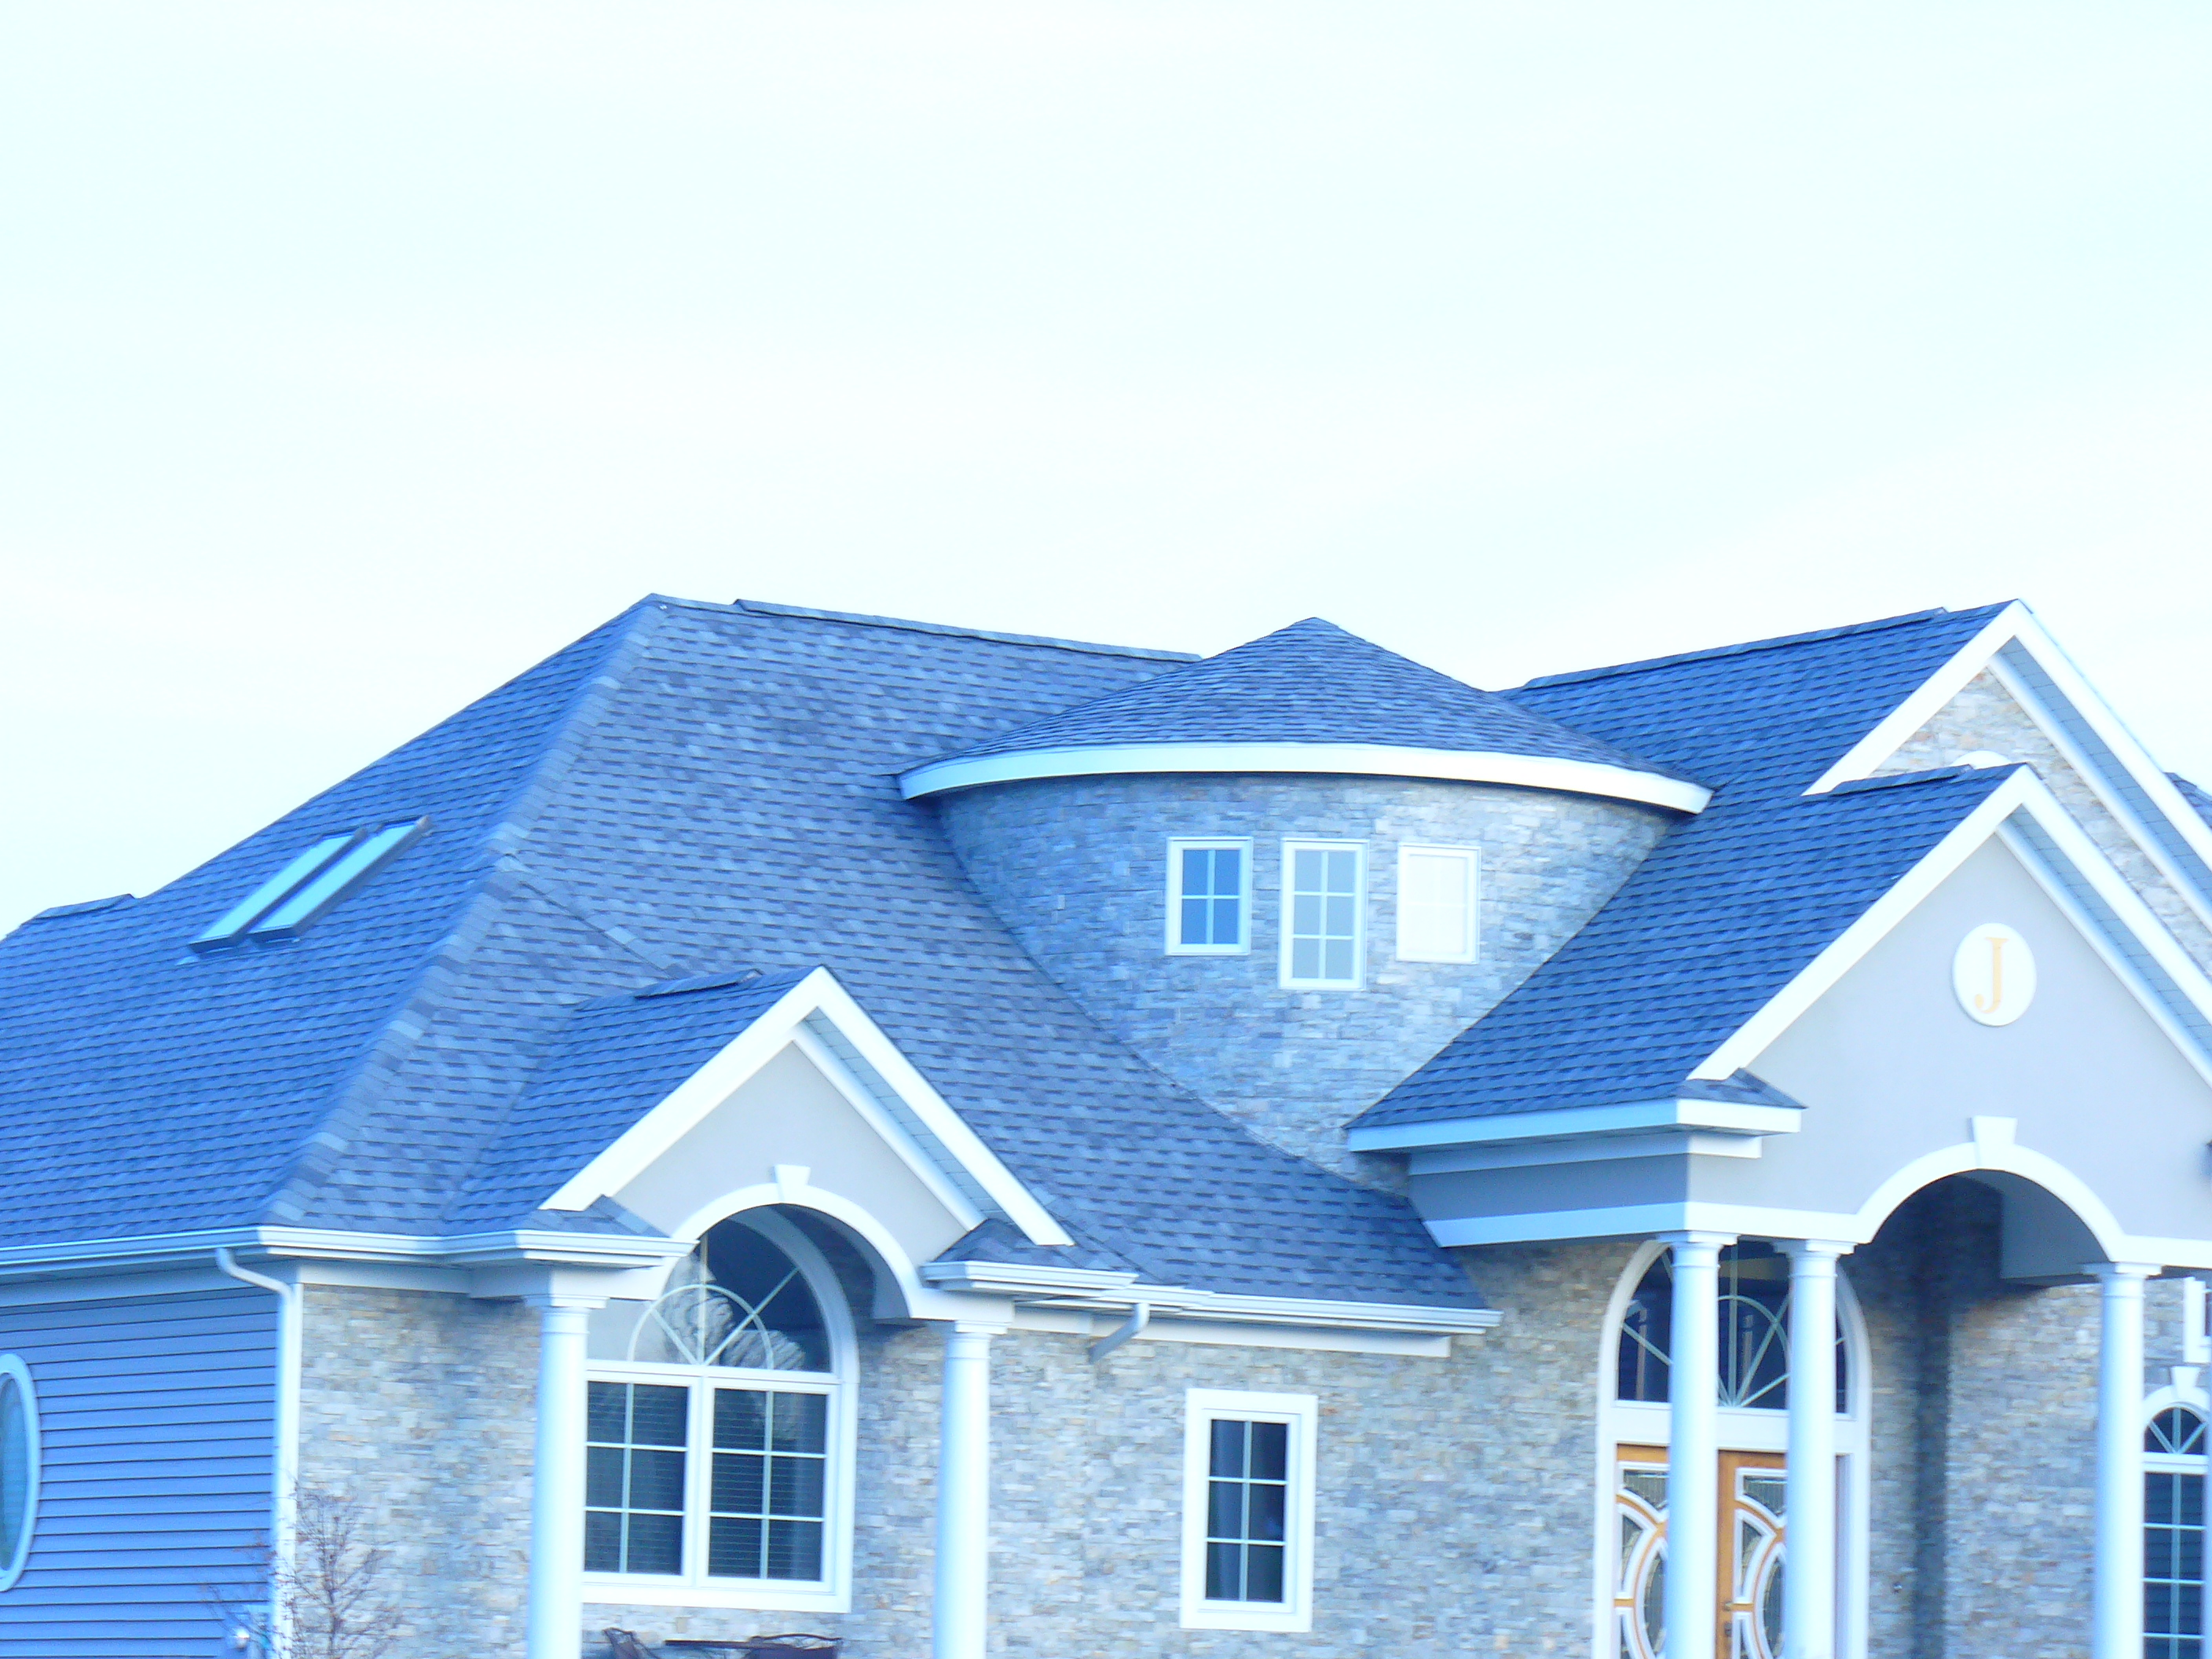 Kalamazoo S Roofing Experts Precision Roofing Inc